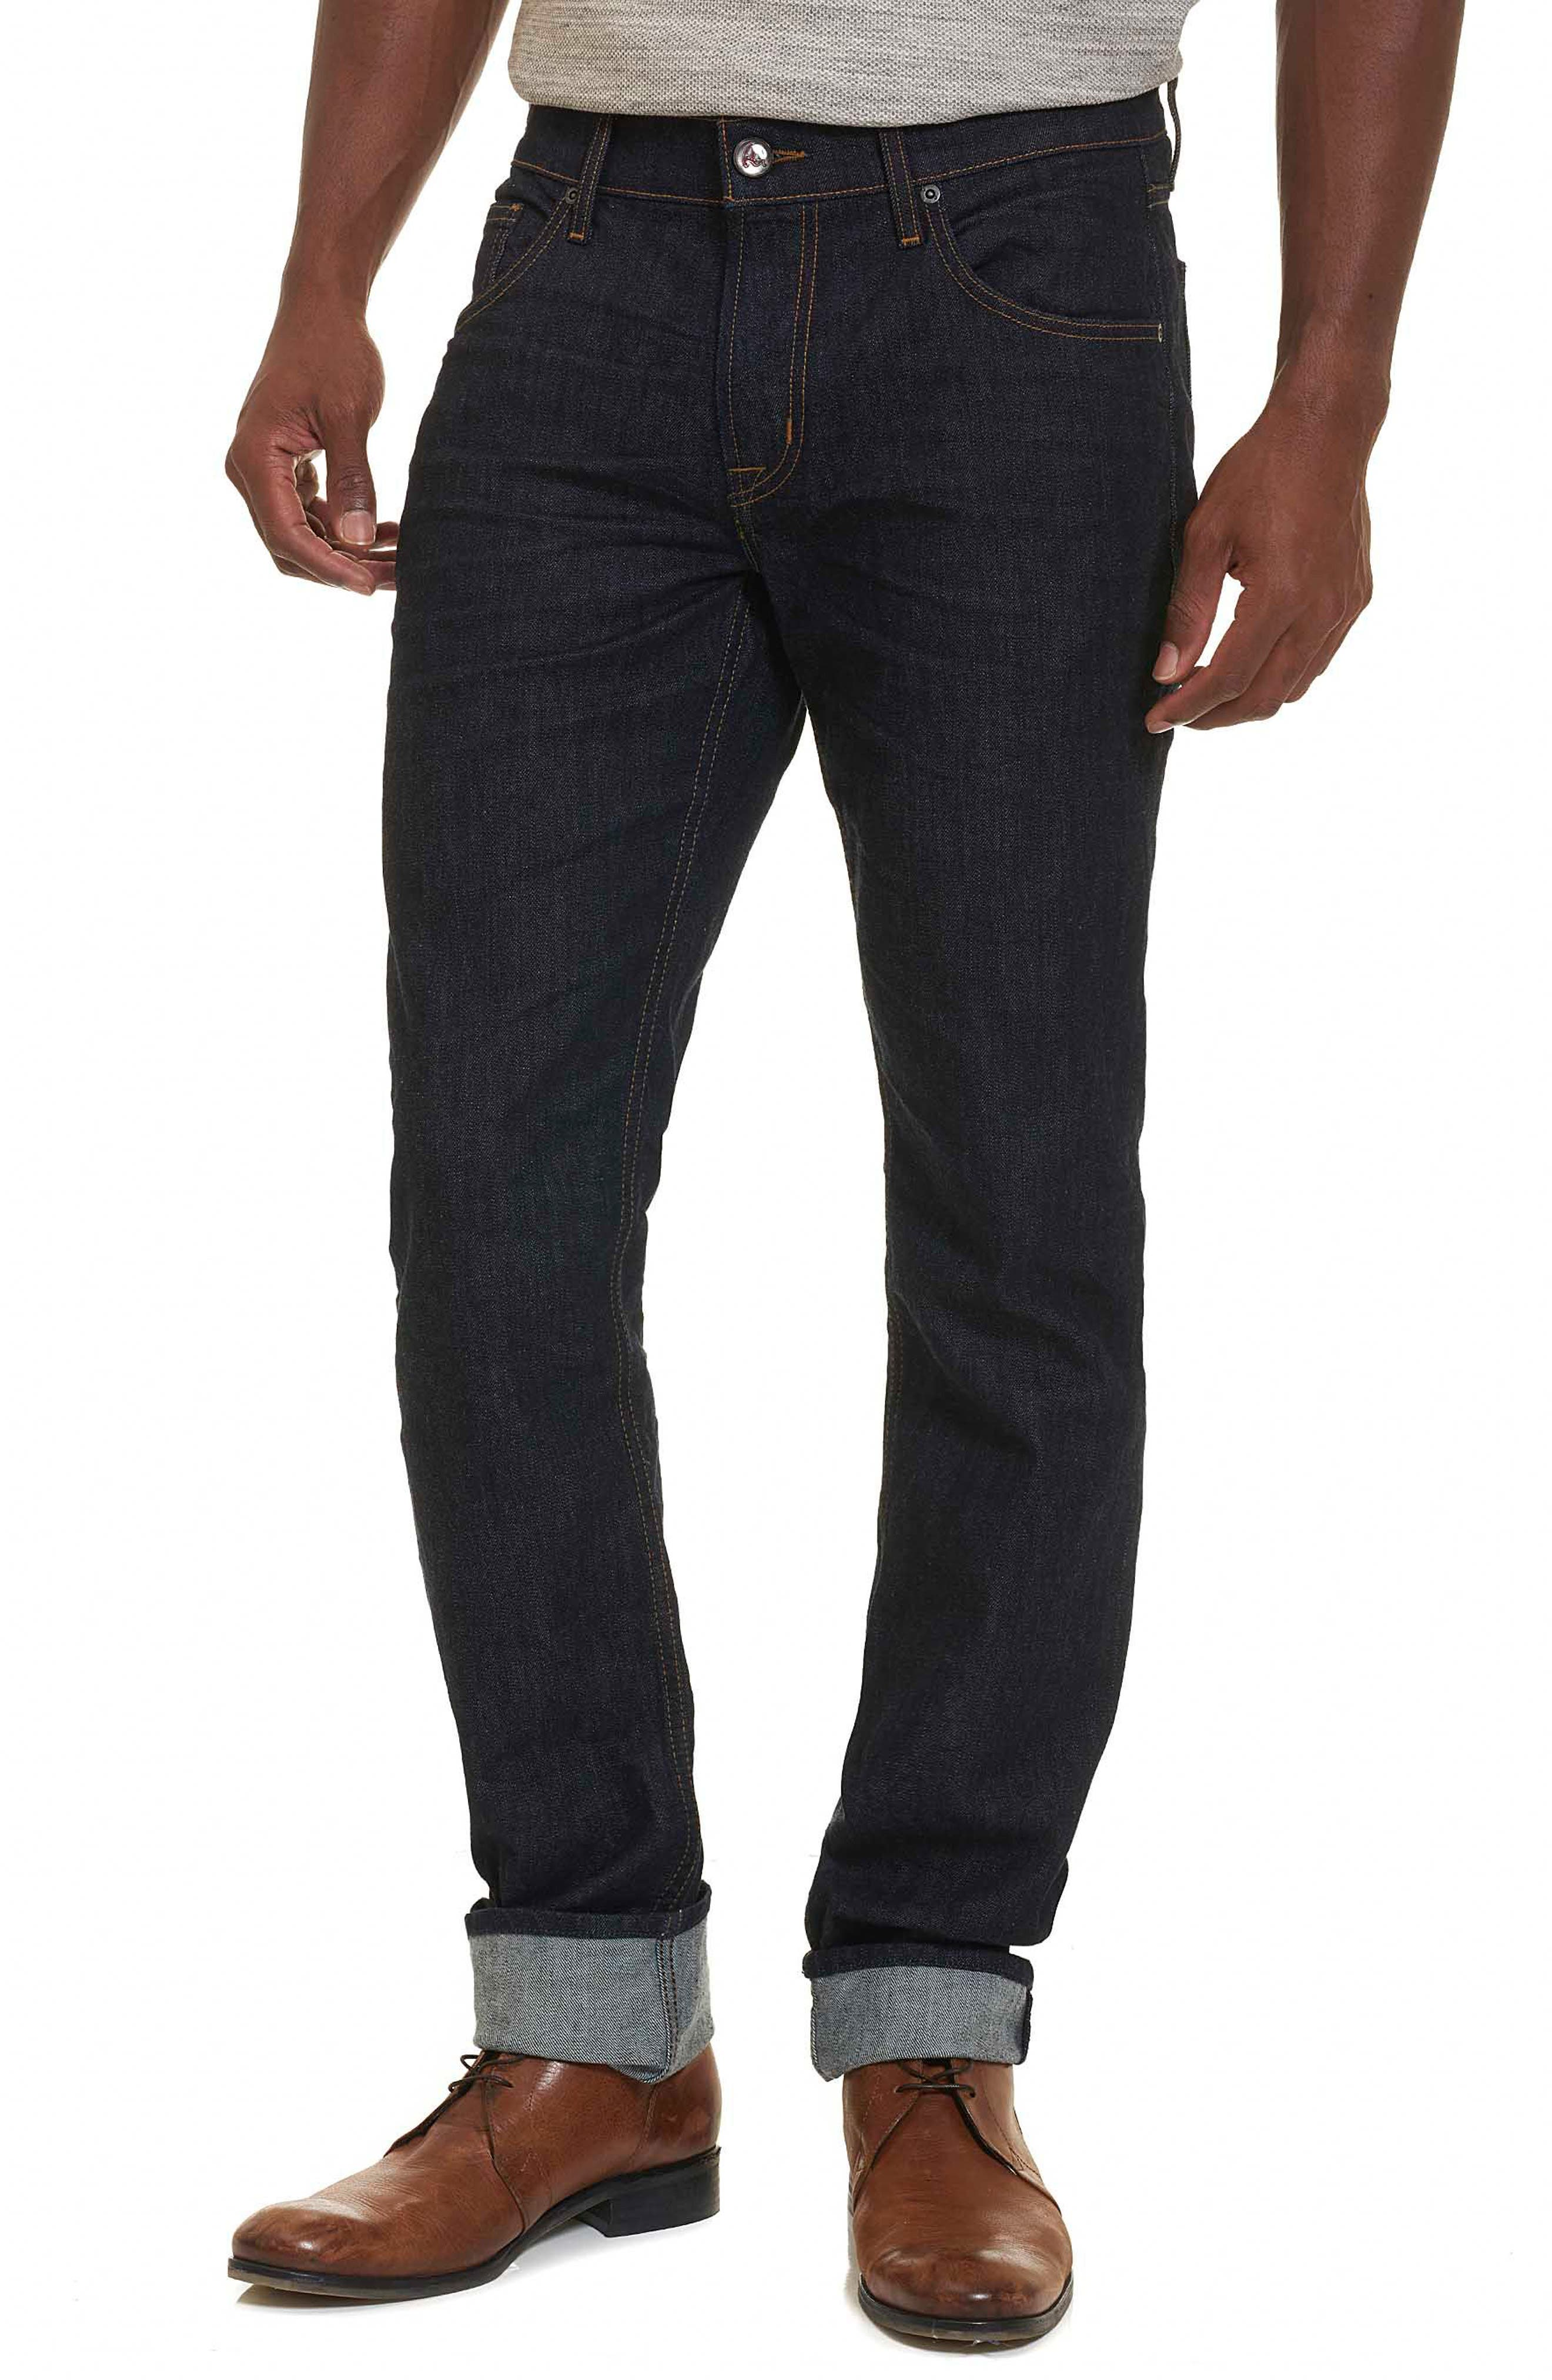 Resist Tailored Fit Jeans,                         Main,                         color, 405